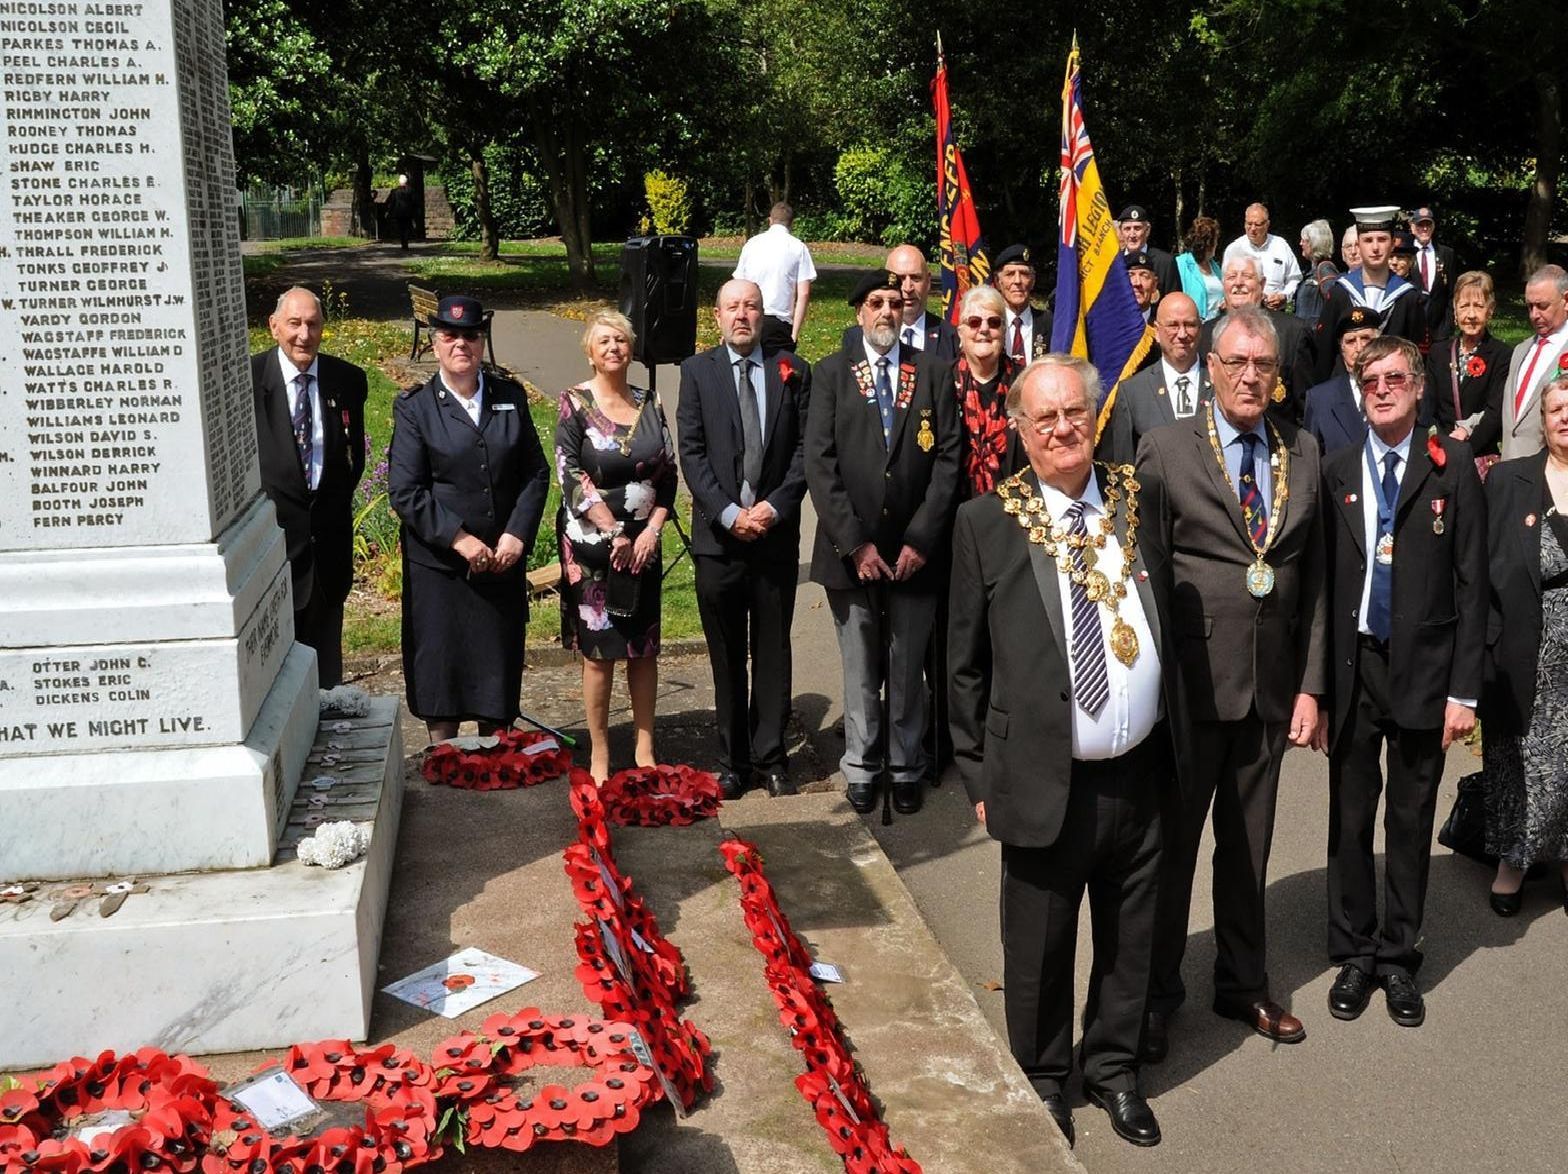 Members of the Staveley Royal British Legion were joined by Chesterfield's Mayor Councillor Gordon Simmons and the Mayoress Councillor Kate Caulfield at the laying of wreaths to mark the 75th anniversary of D Day on Thursday.